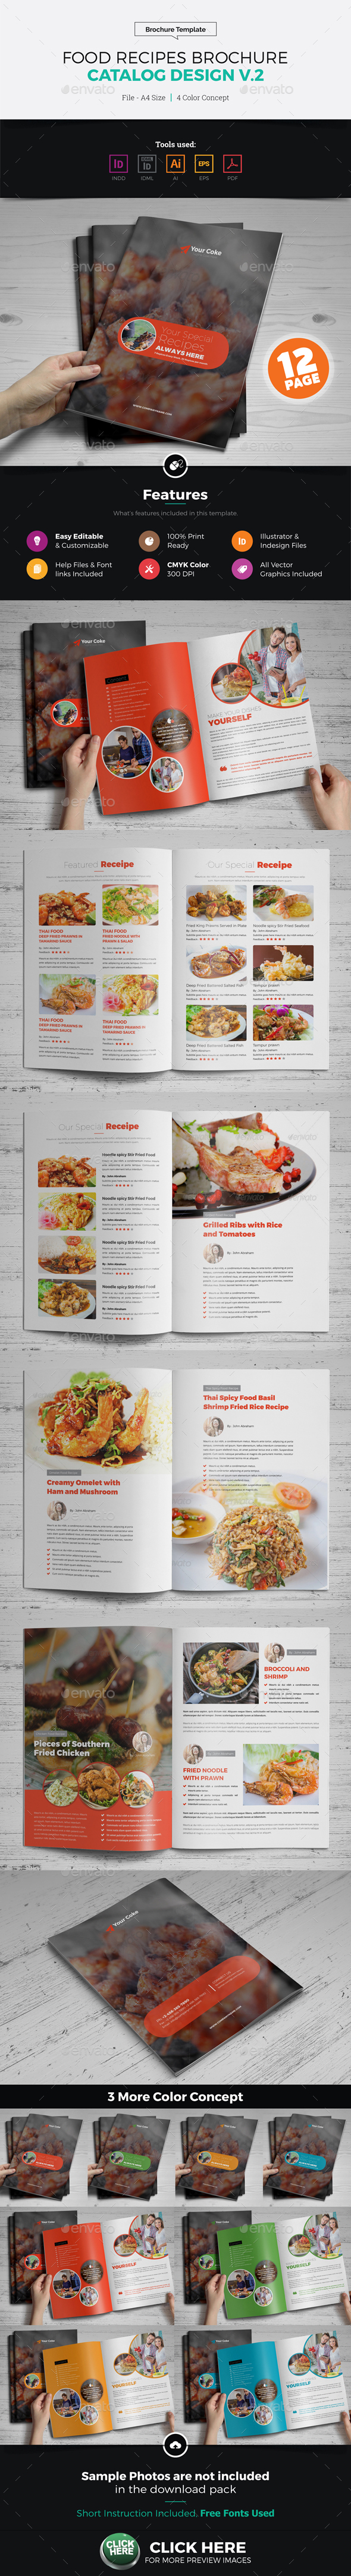 Food Recipes Brochure Catalog Design v2 - Corporate Brochures